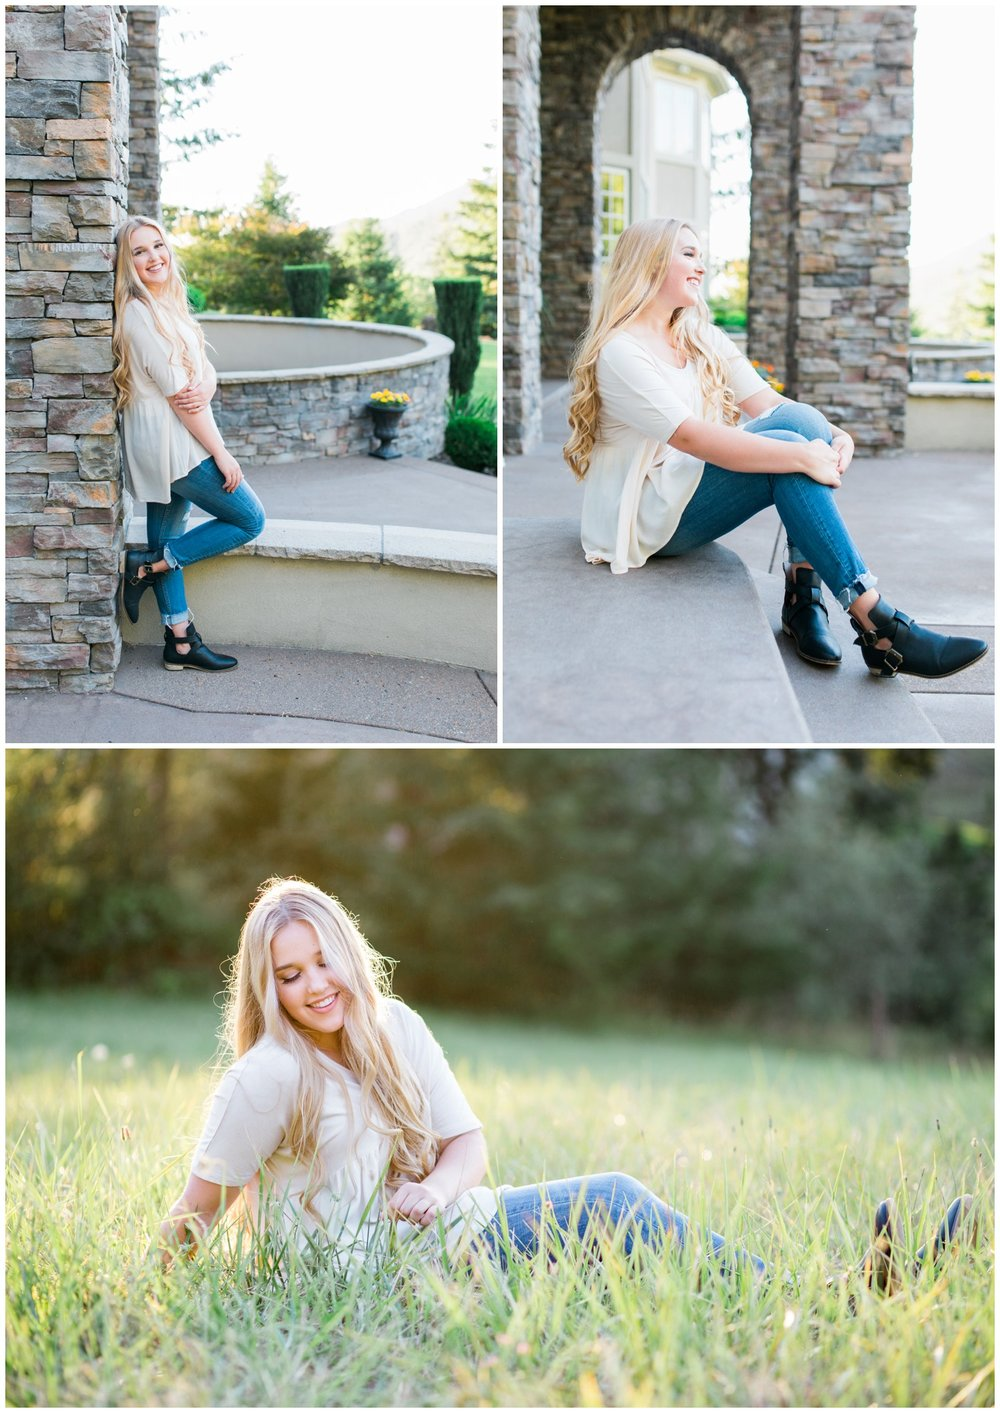 Portland senior photographer based out of Hillsboro, Oregon travels to Eugene to take senior portraits.